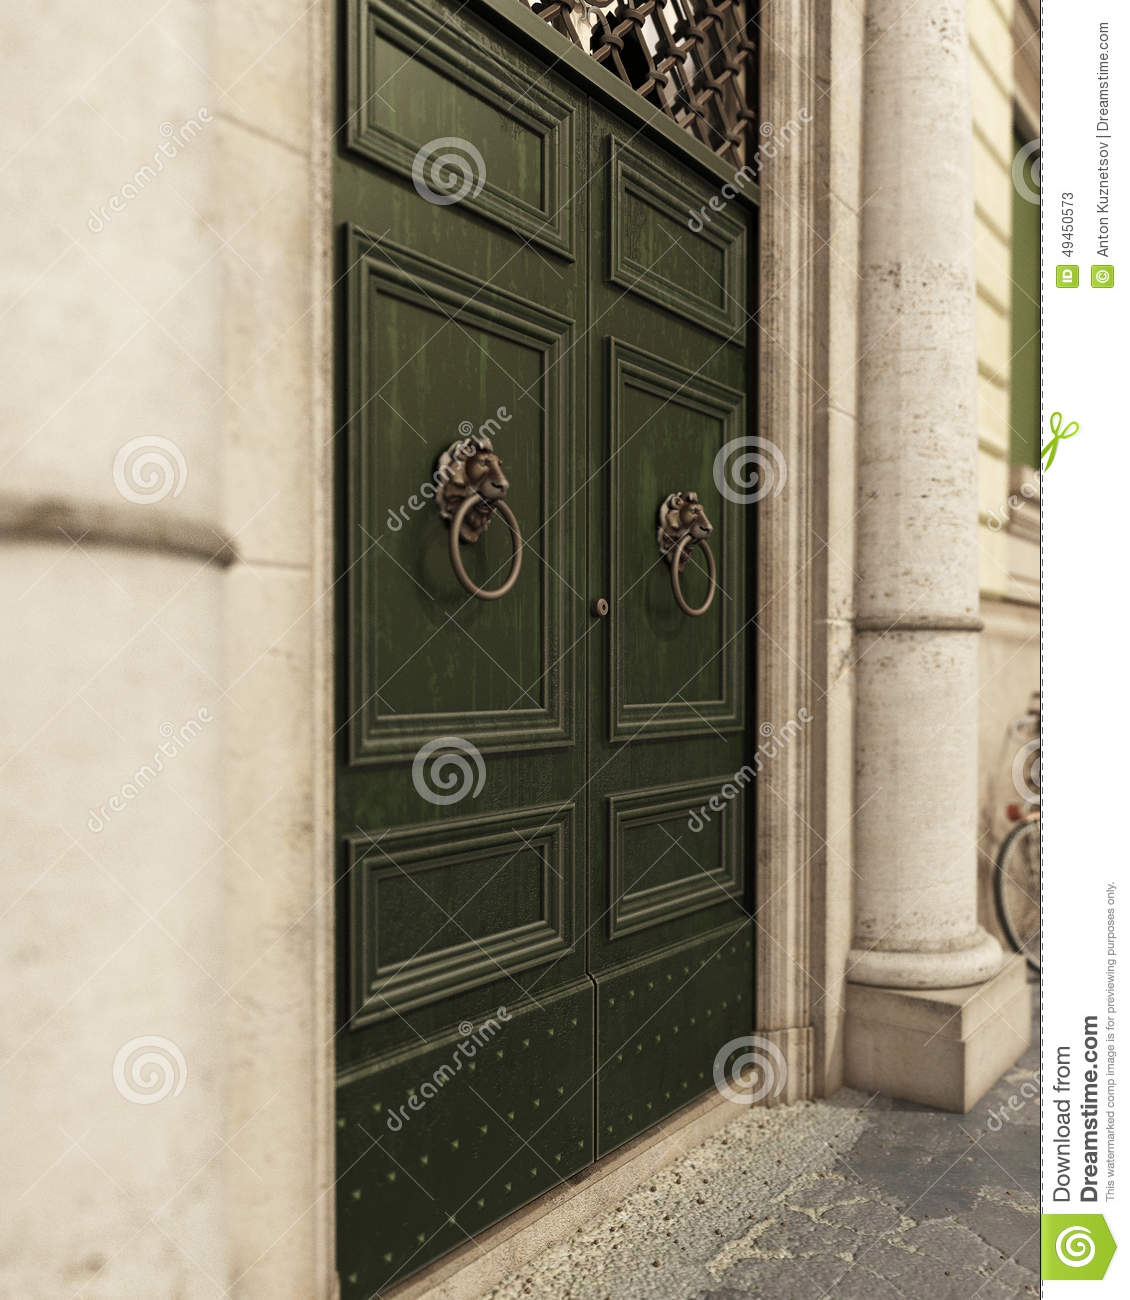 Medieval Front Doors: Traditional Medieval Door With Columns And Balcony Royalty